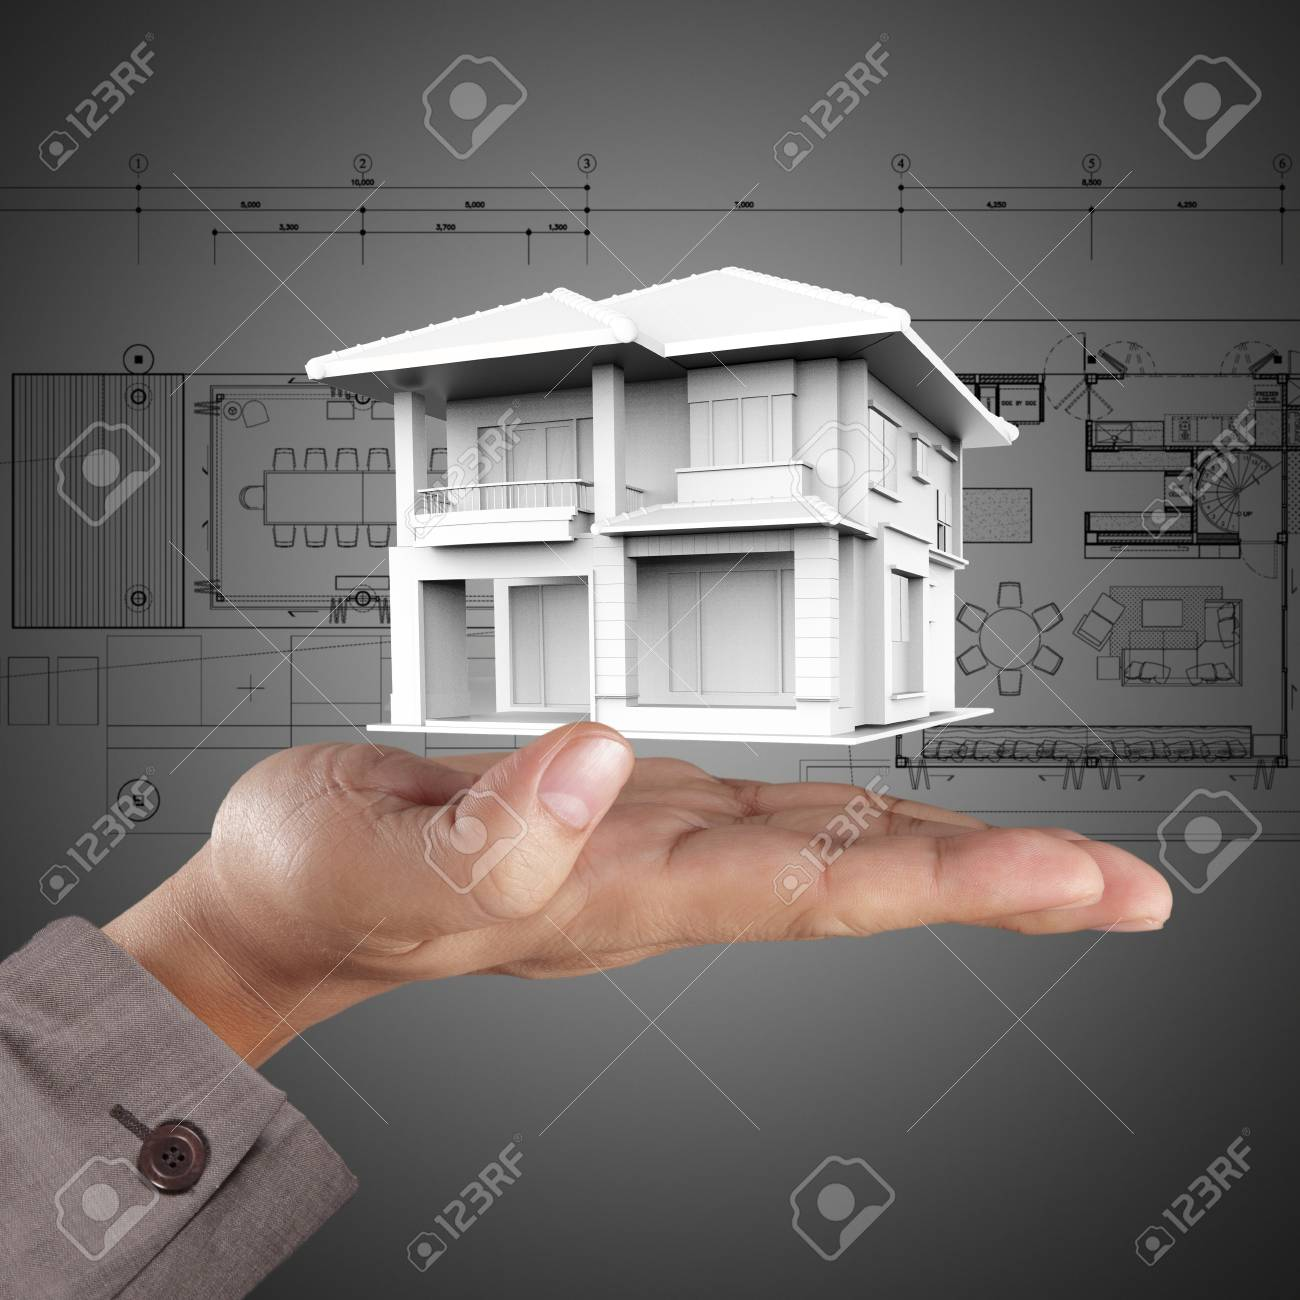 The house in hands on blue print Stock Photo - 14774853